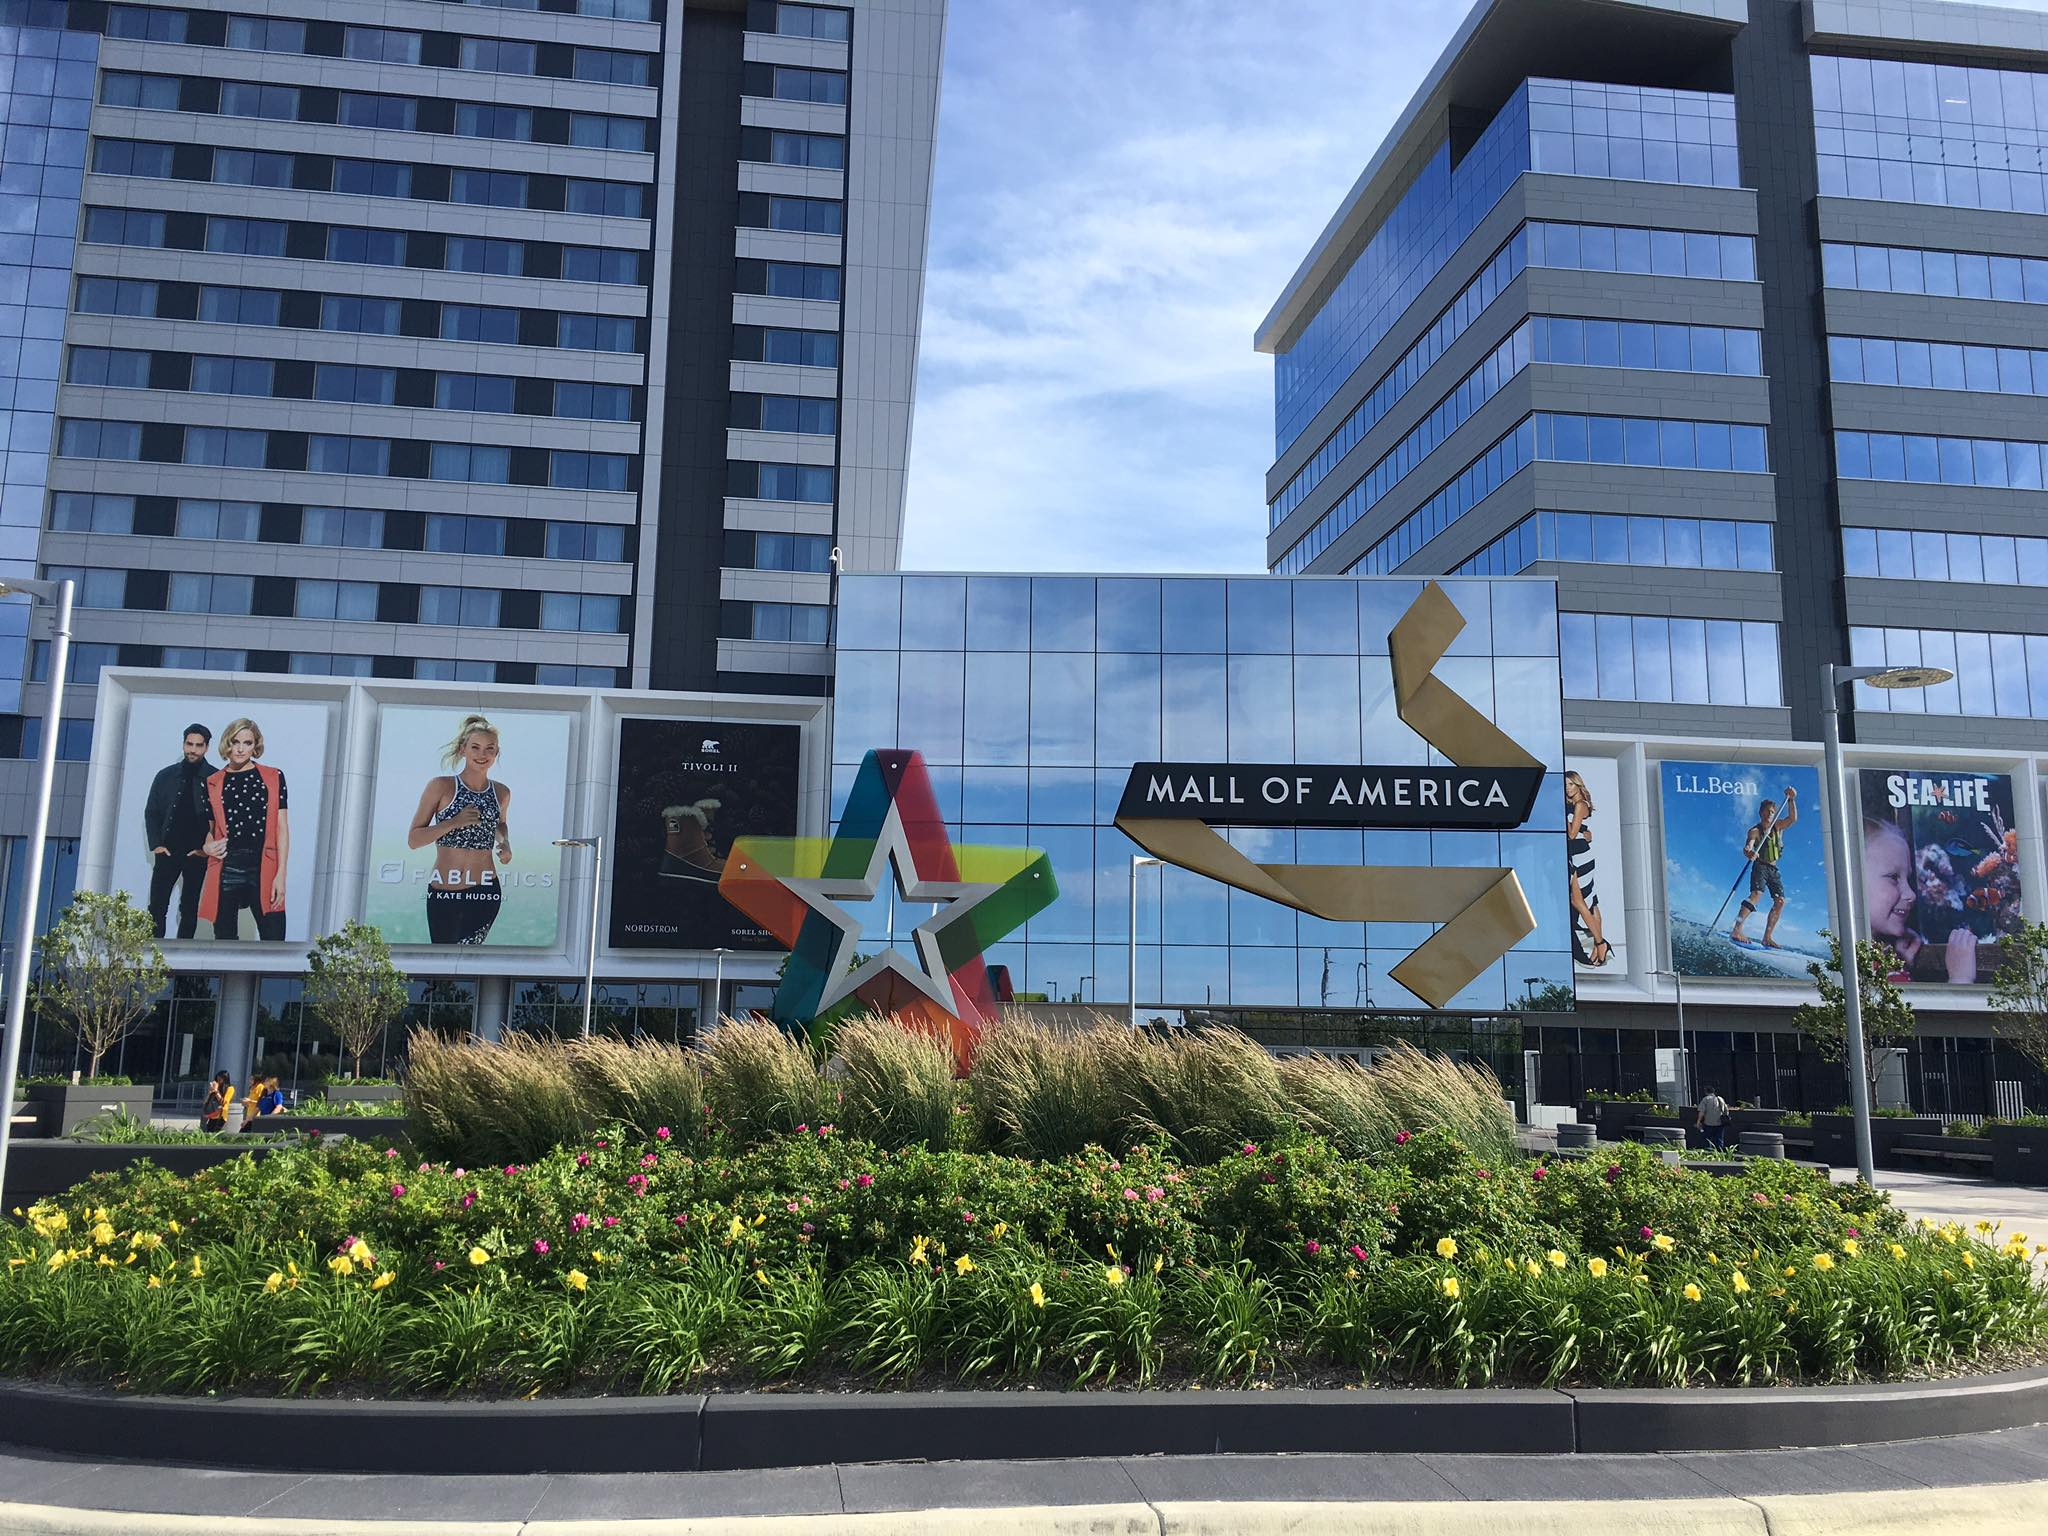 Picture of Mall of America taken from my iPhone